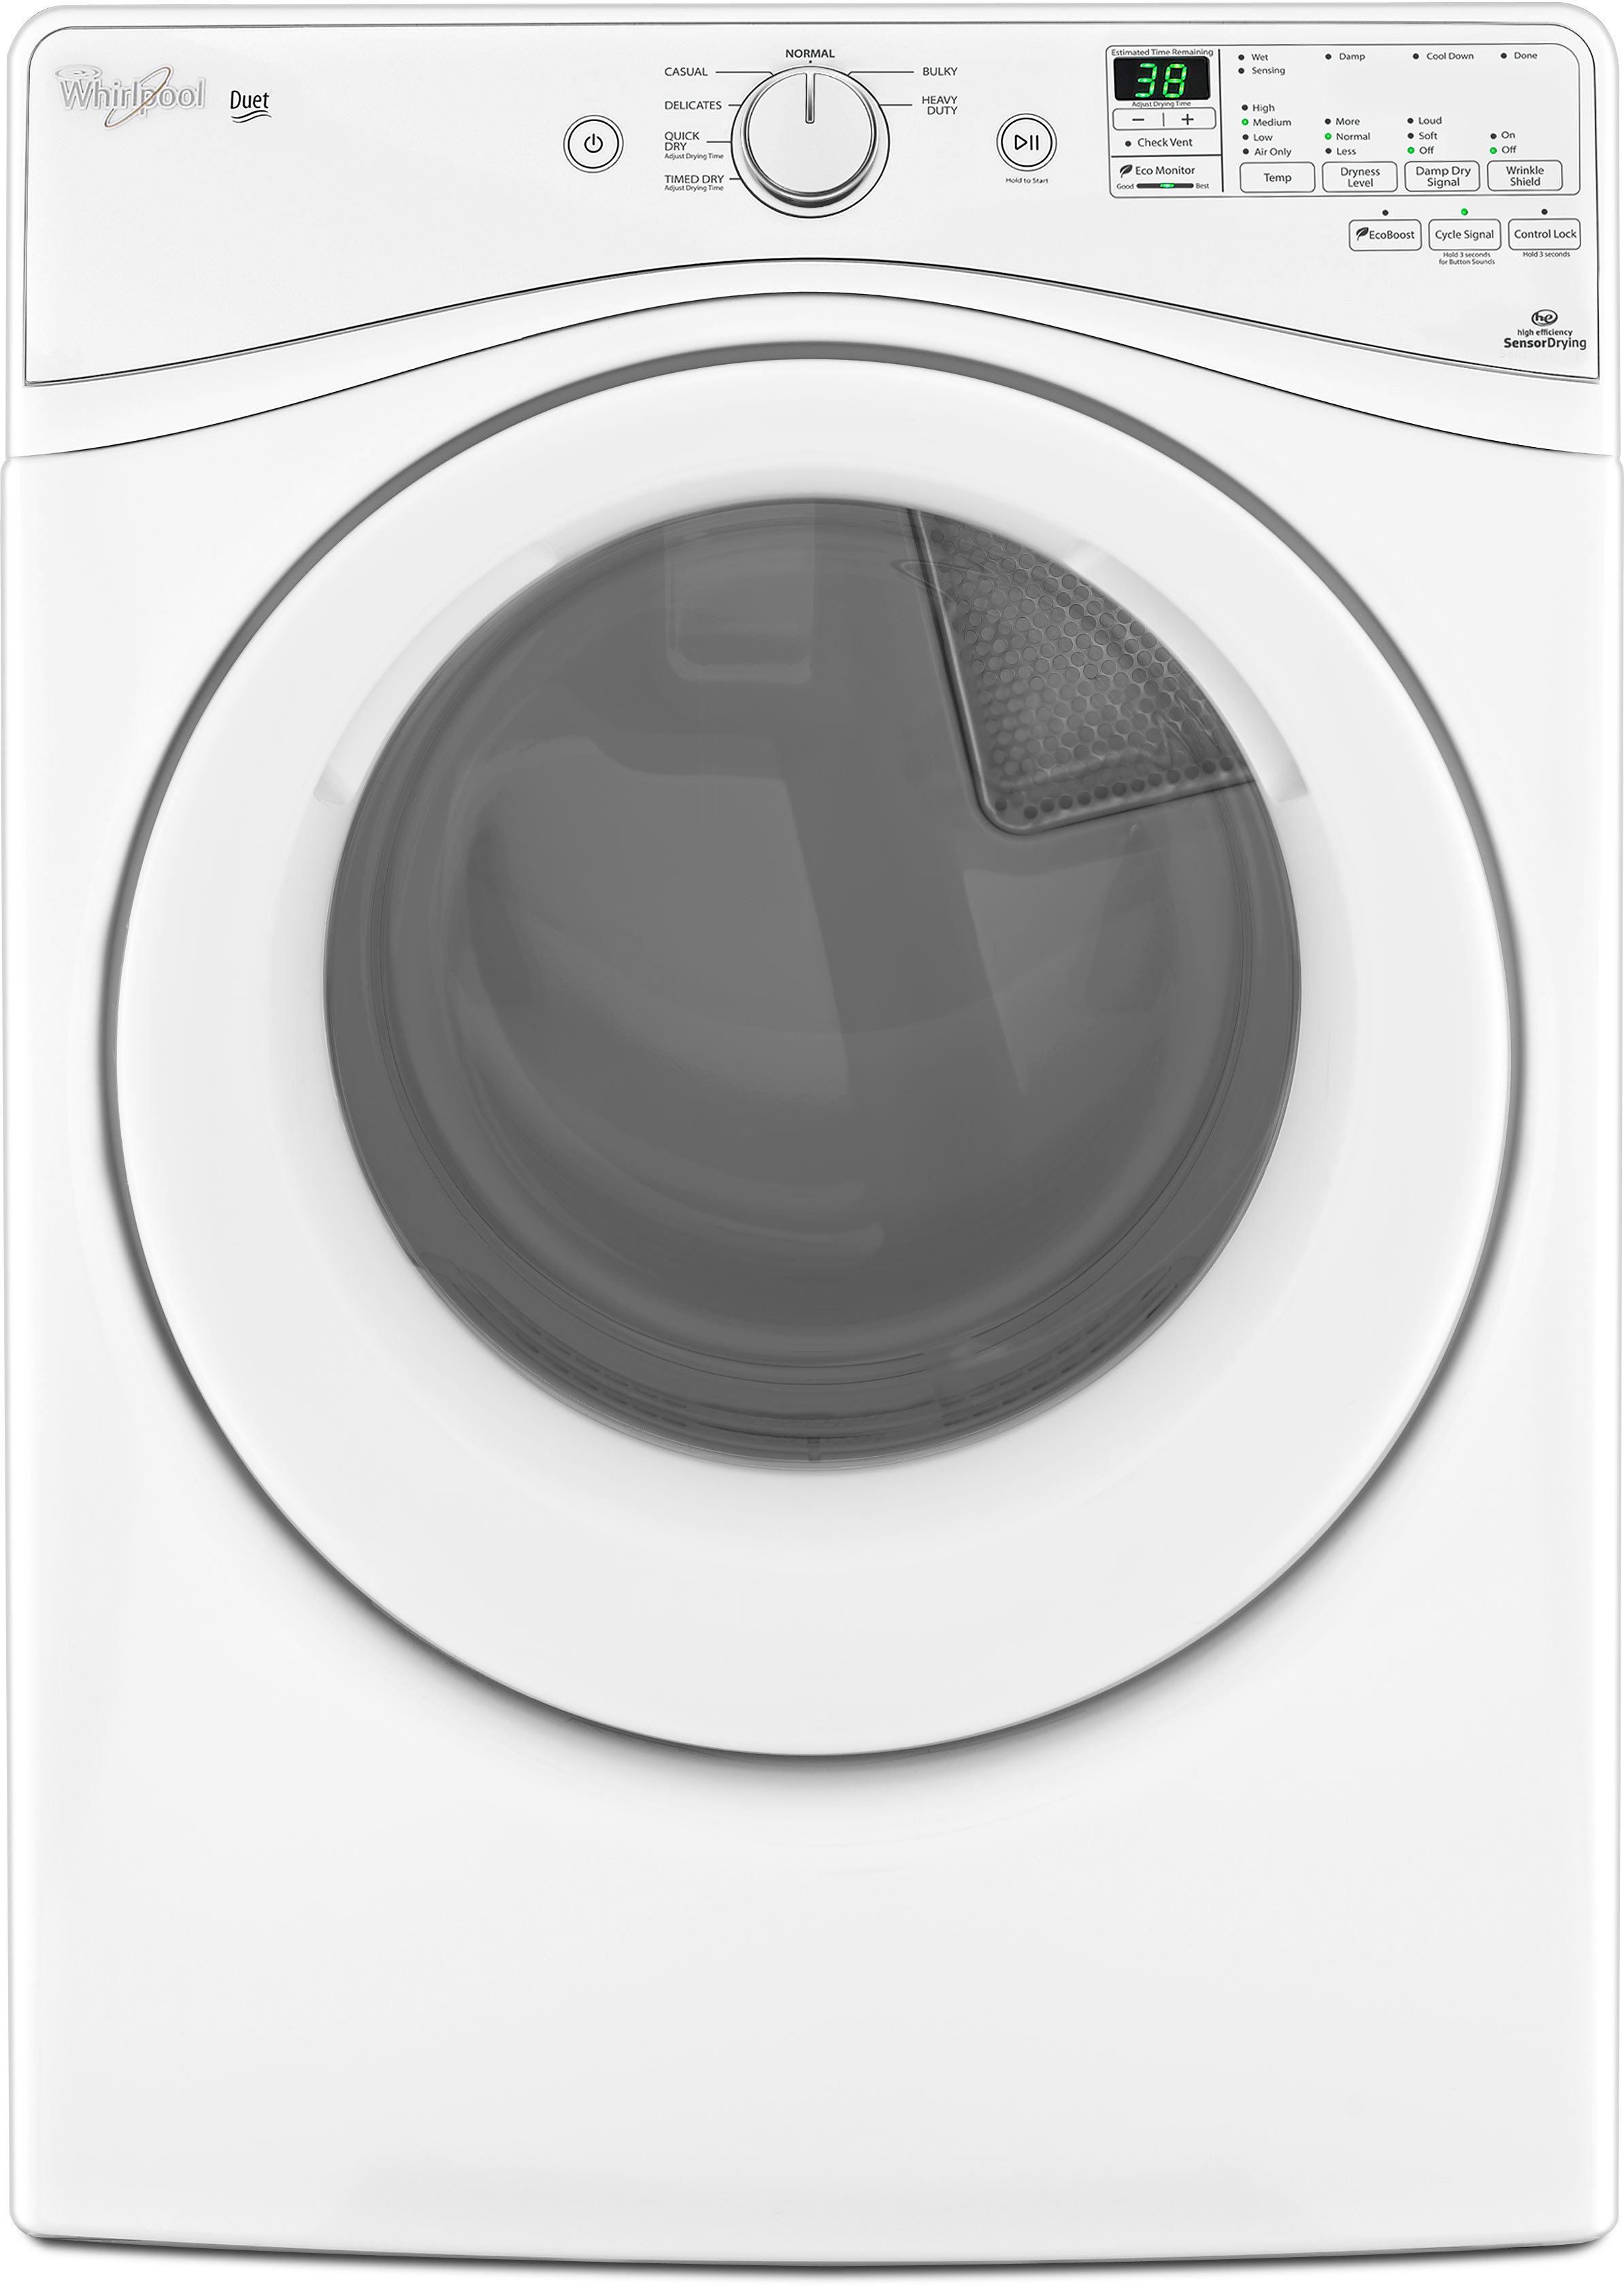 Whirlpool Duet Washer And Dryer Are They Stackable Upgrade Your Life